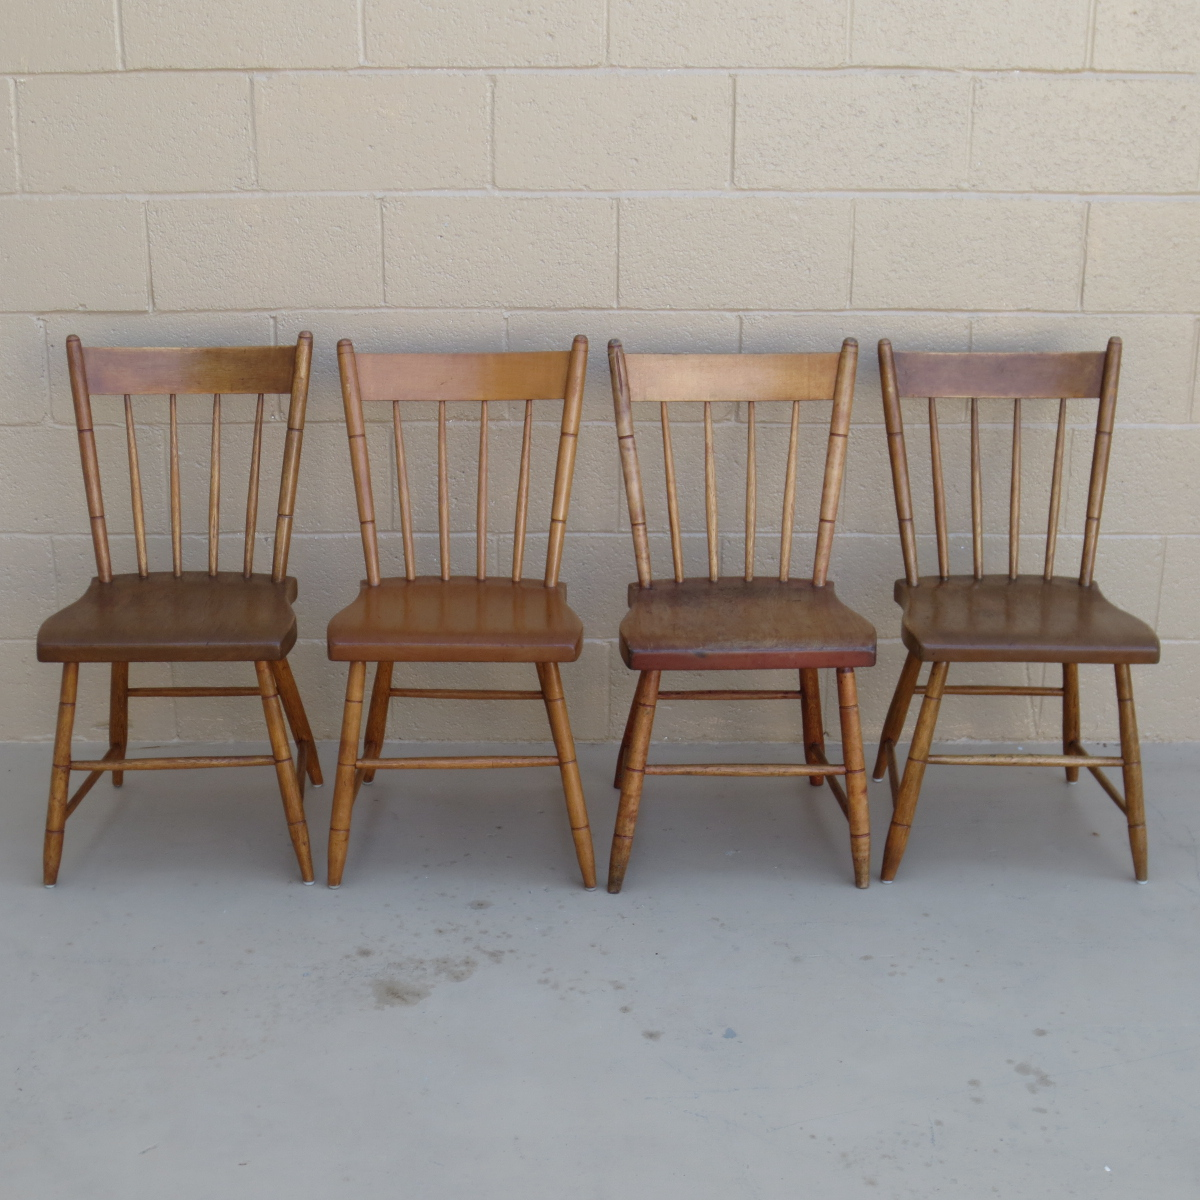 Master Antique Chairs Antique Diningroom Chairs Antique Furniture vintage dining chairs